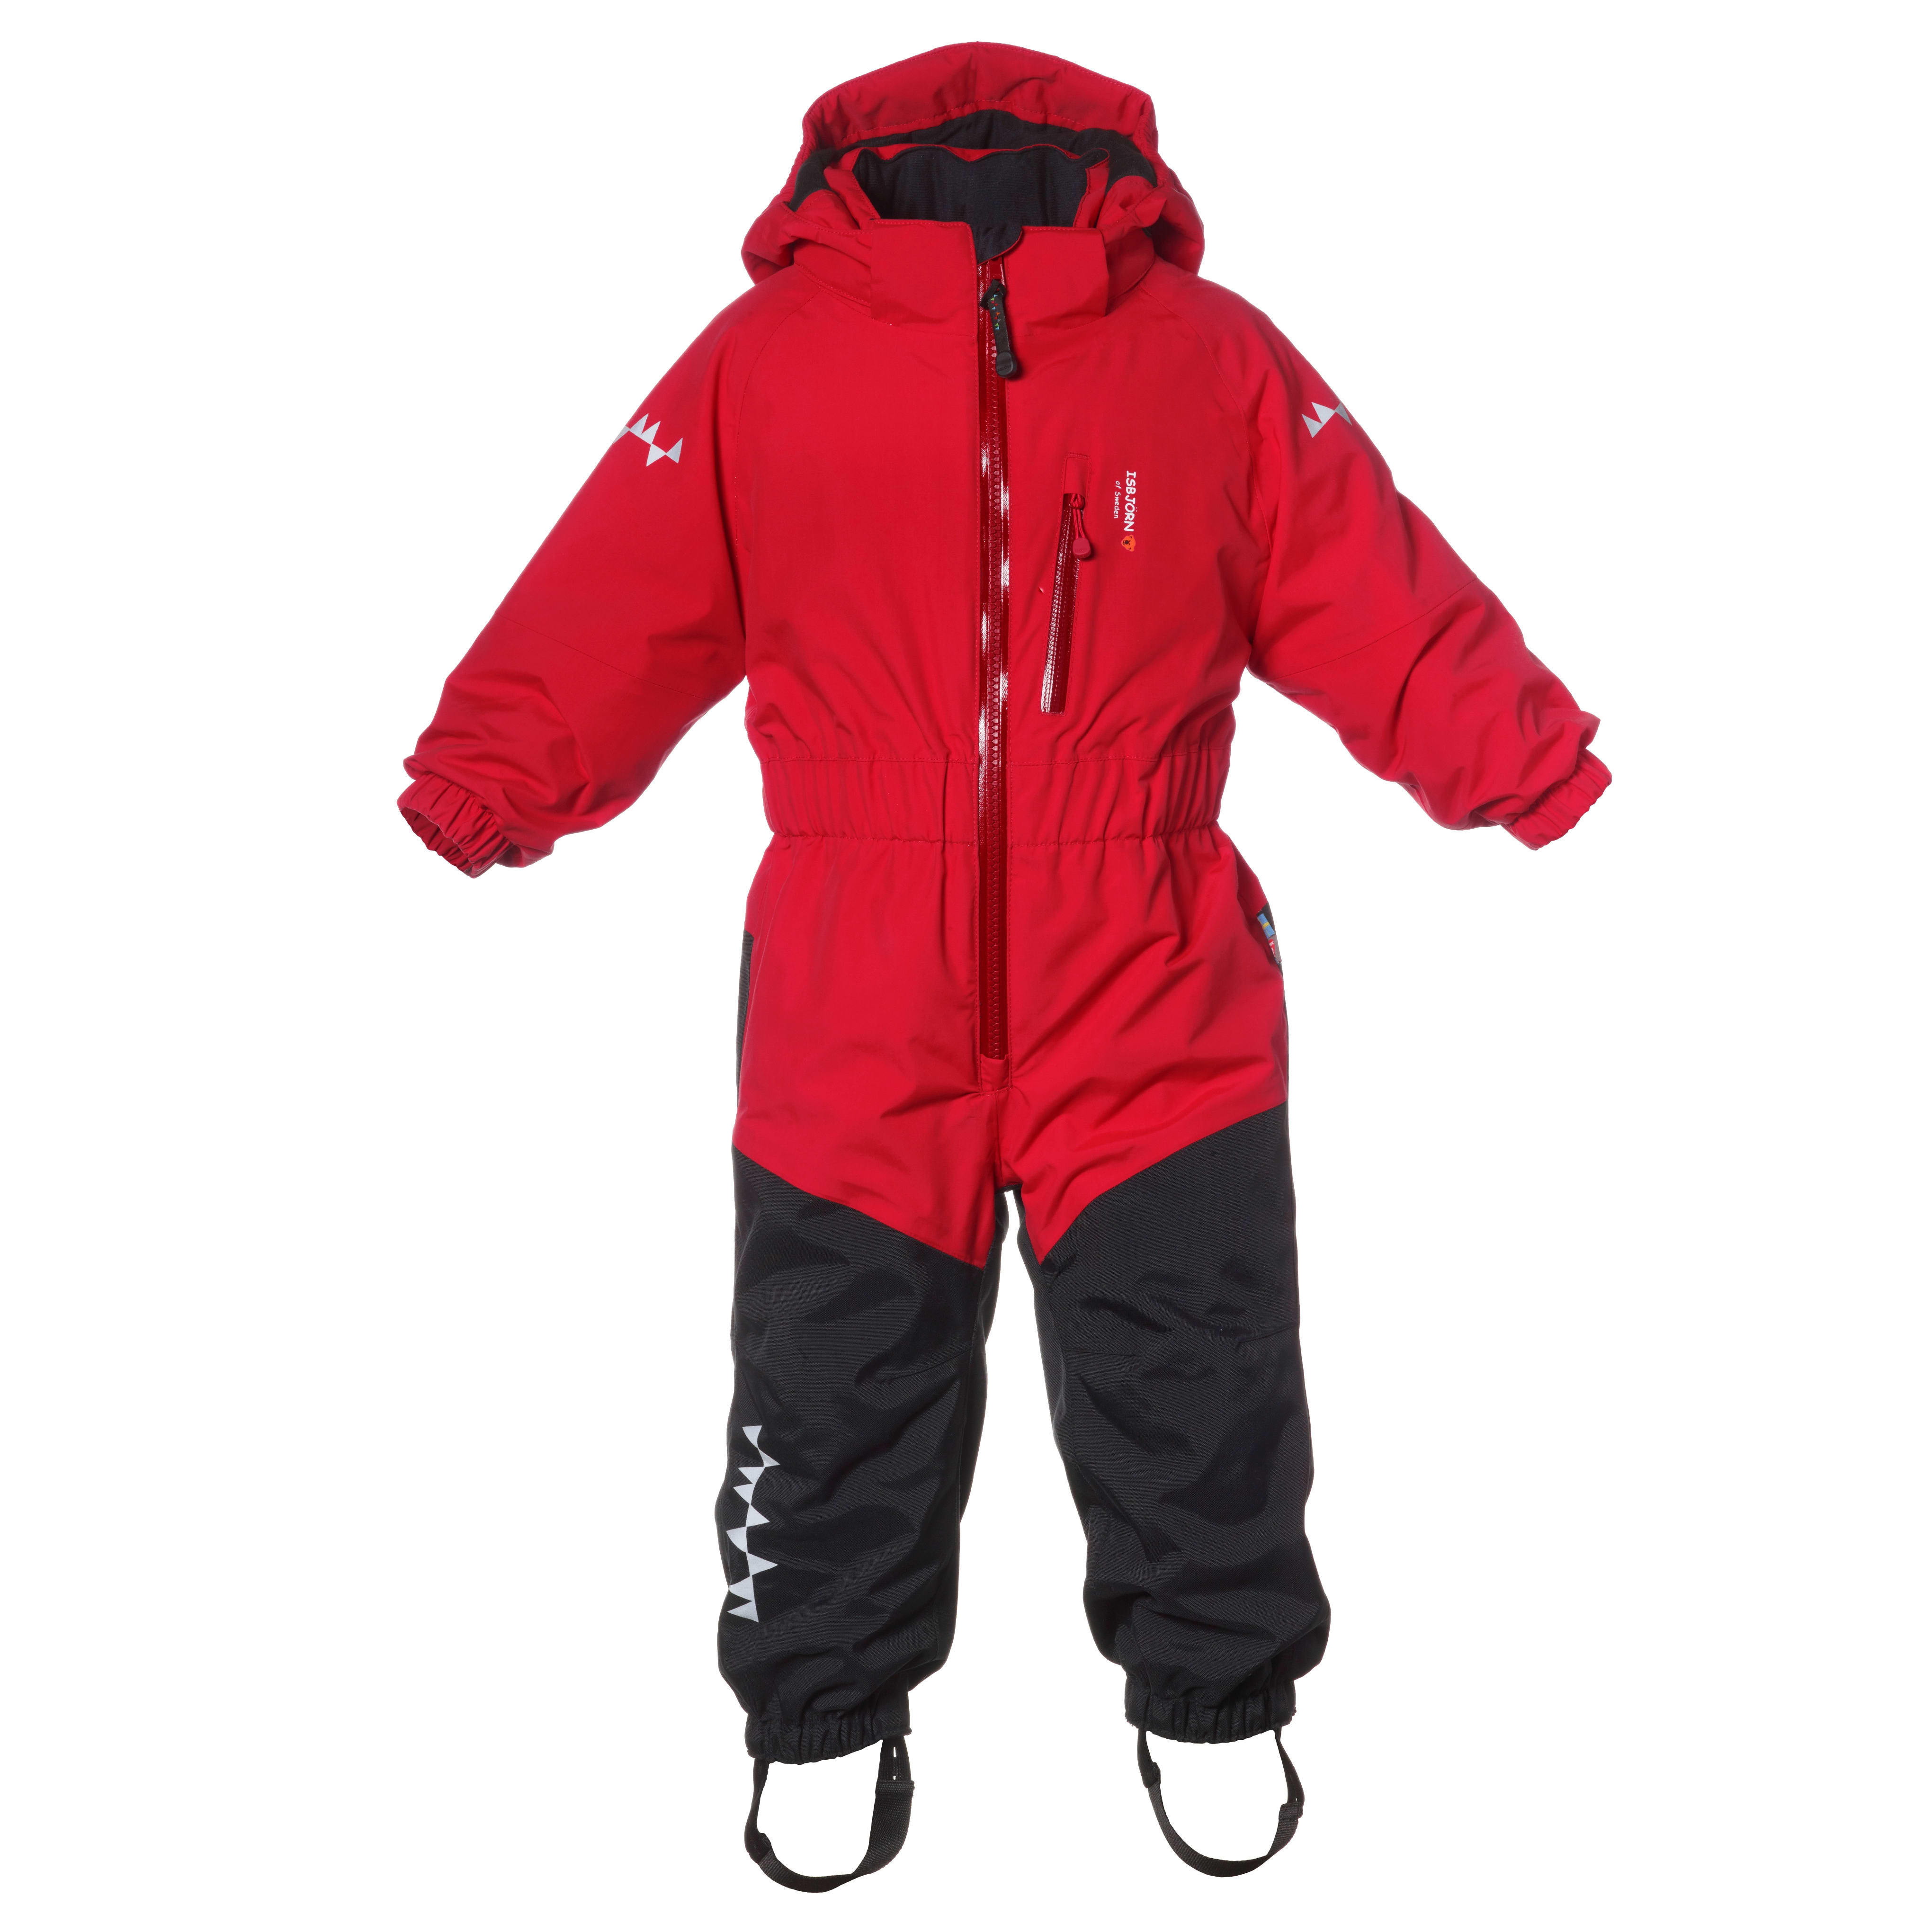 dc43fe0bcf31 Buy Isbjörn of Sweden Penguin Snowsuit from Outnorth